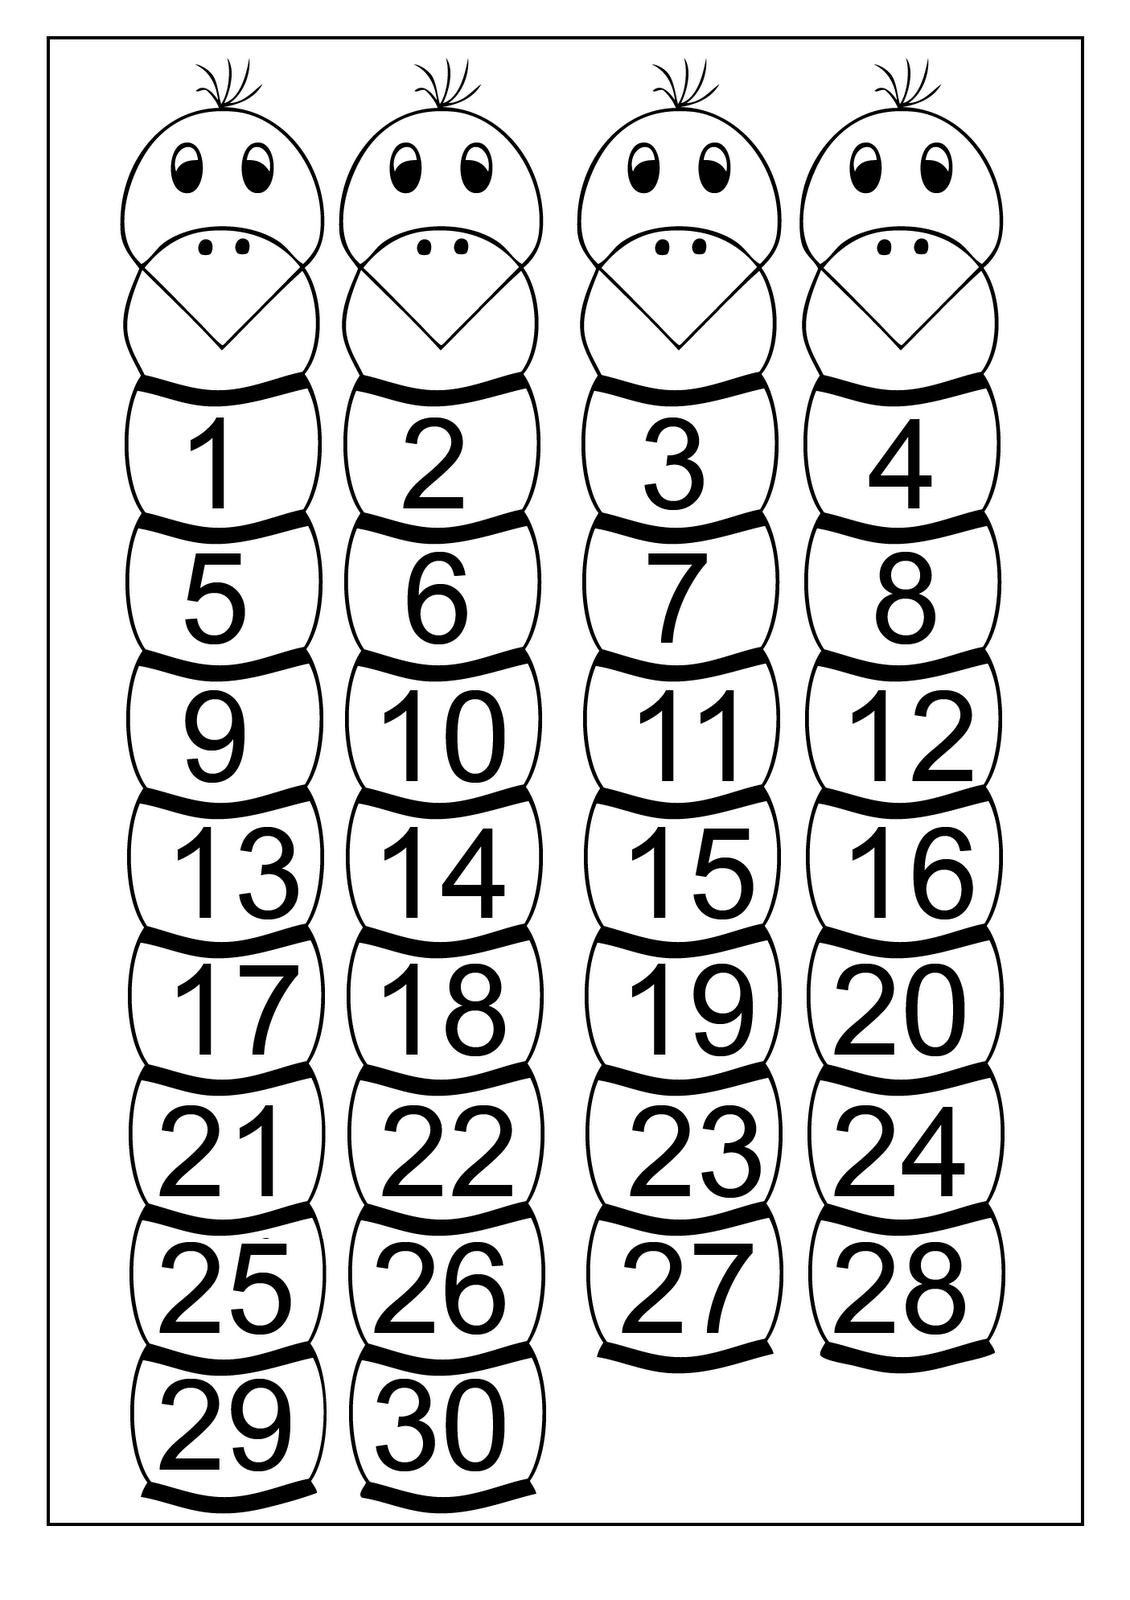 number chart 1-30 printable